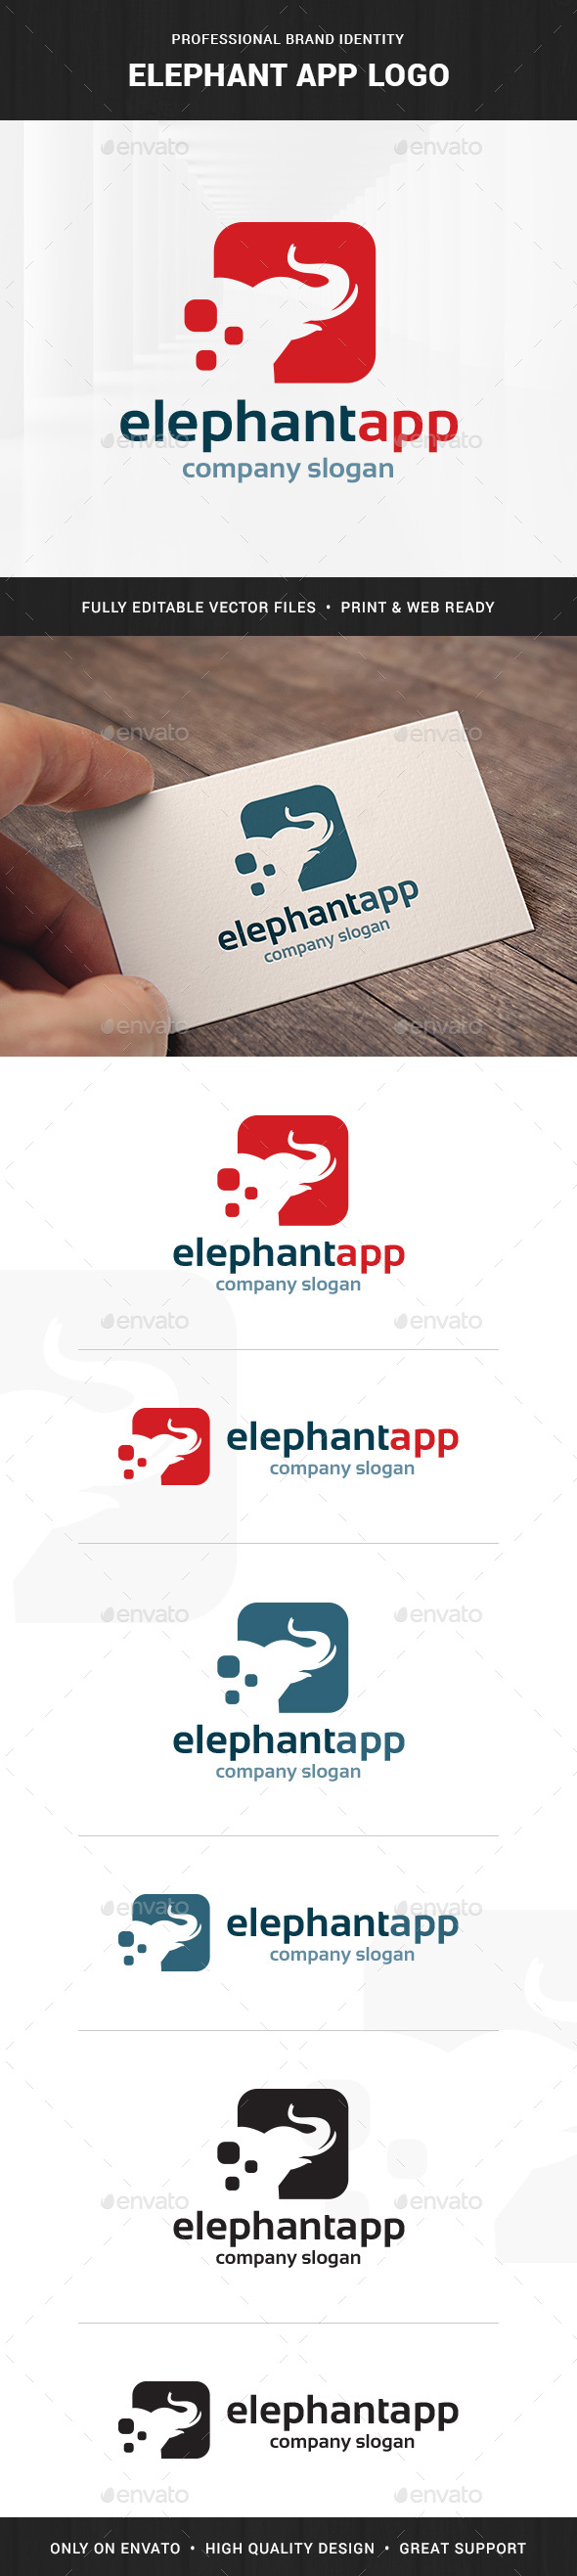 Elephant App Logo Template - Animals Logo Templates